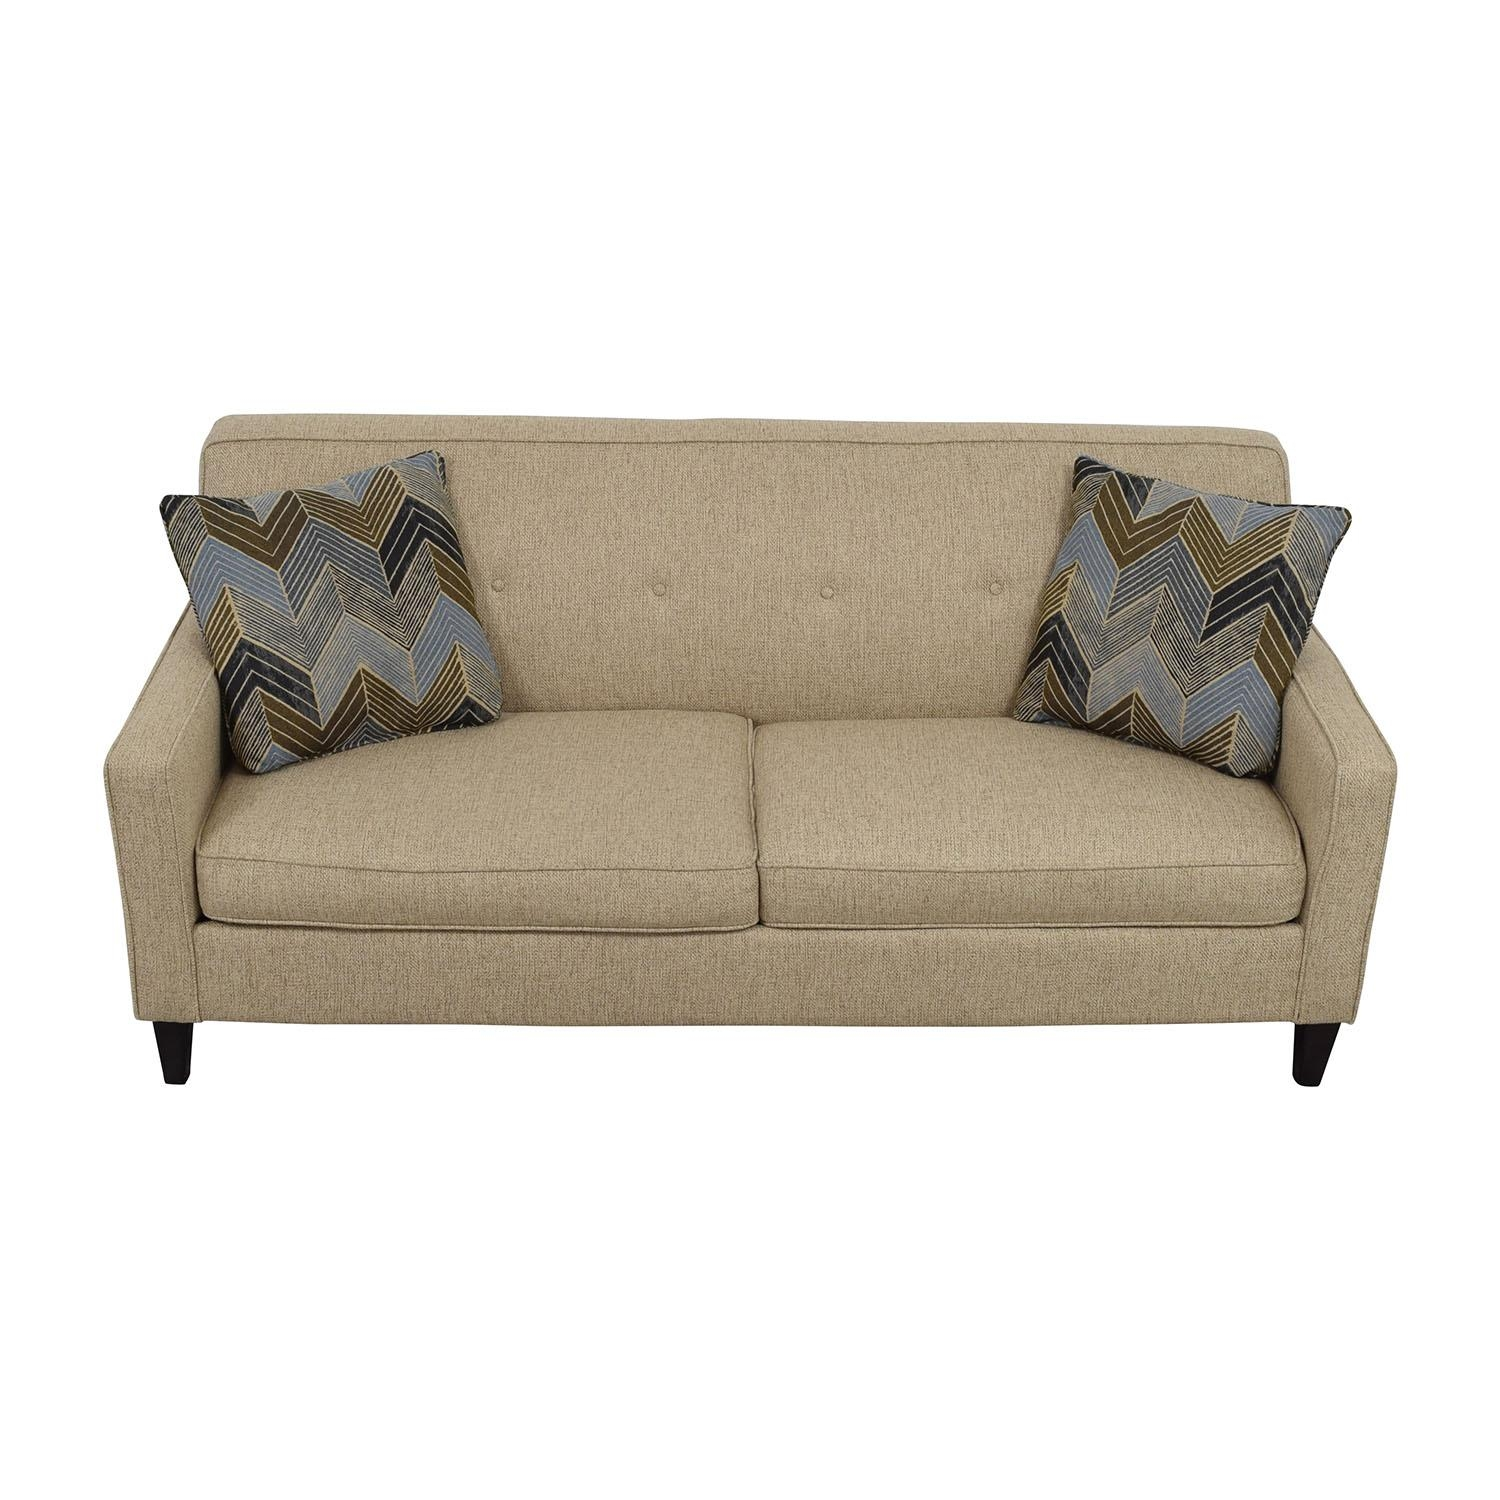 Sofas Center : Traditional Sofa Ebay Used Sofas For Sale Uk Corner Regarding Traditional Sofas For Sale (View 13 of 20)